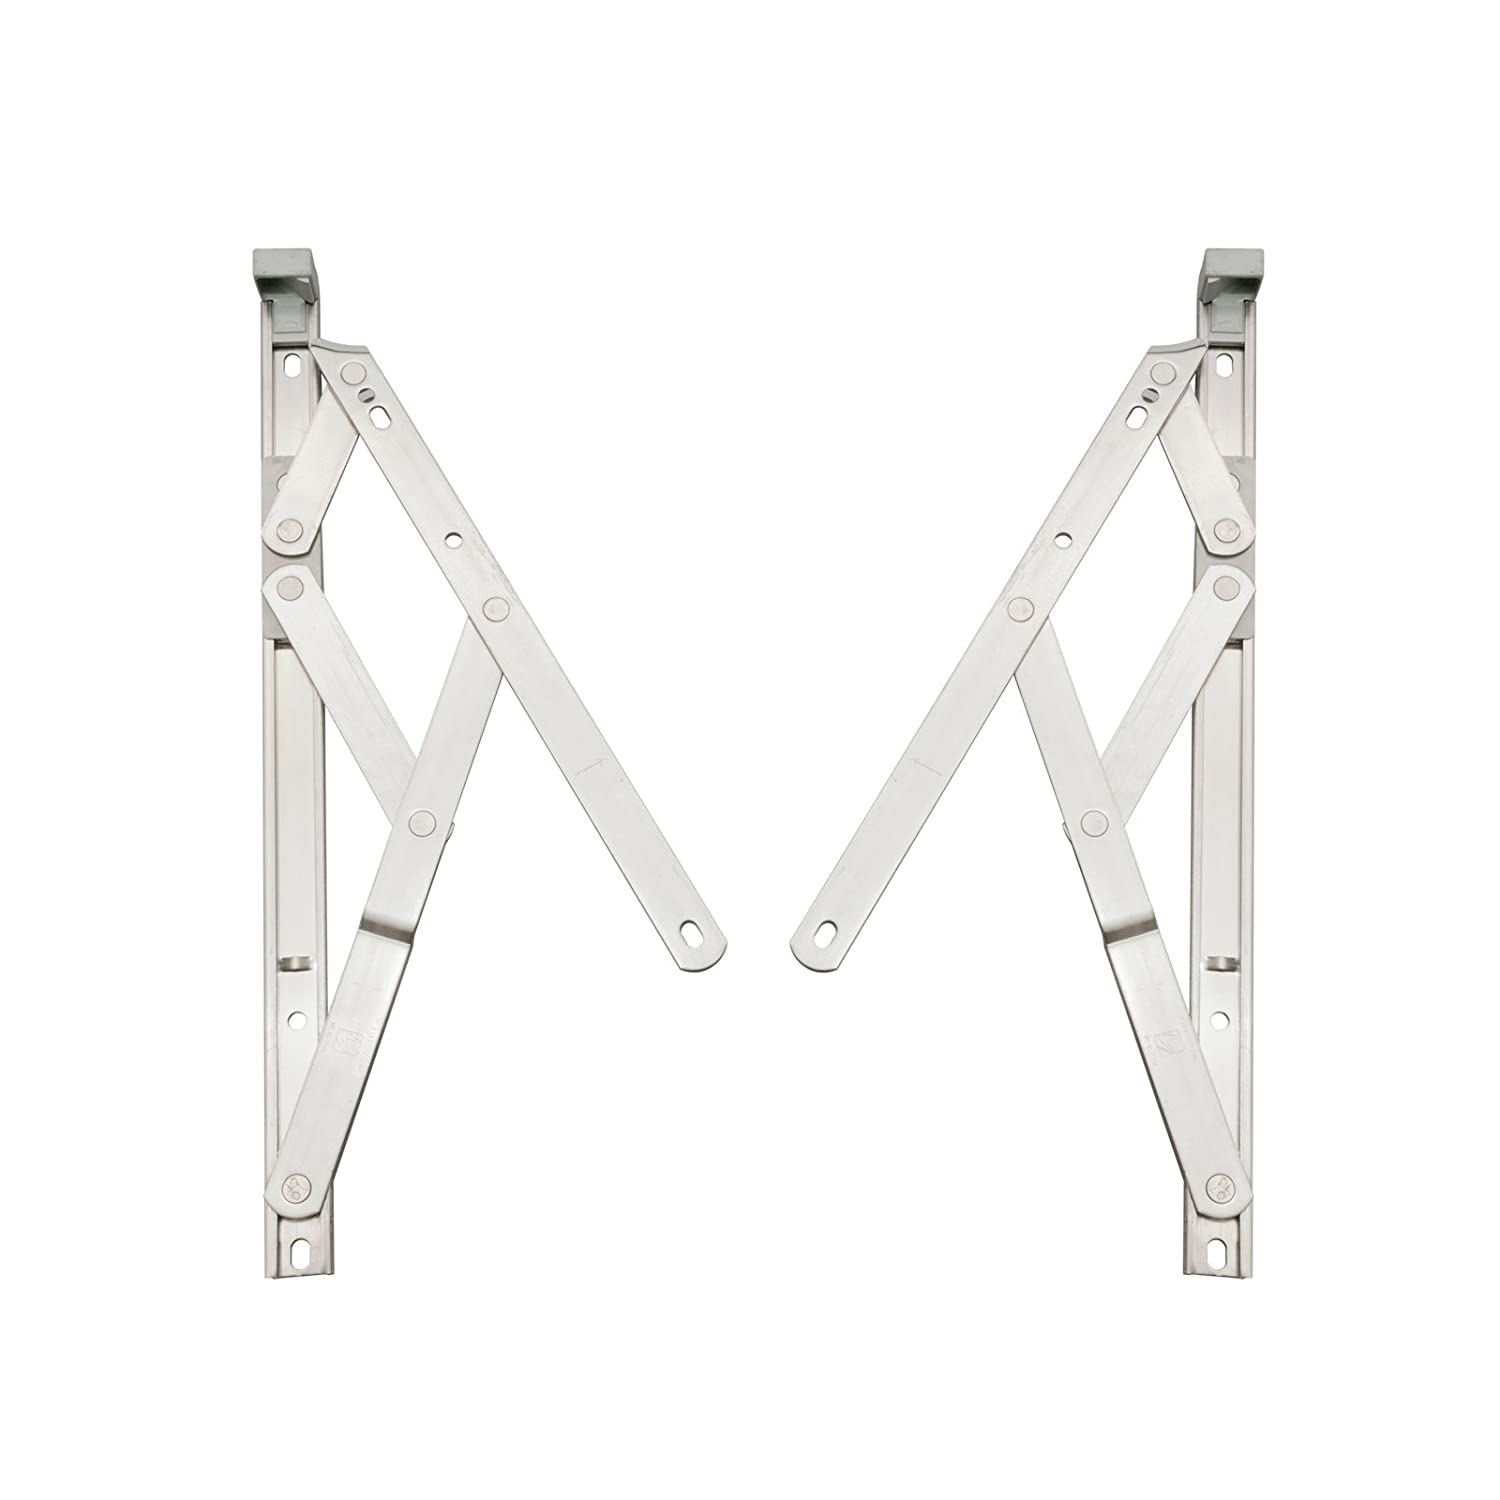 Pair of 17mm x 8' inch Top Hung Window Stays/Friction Hinges - Designed to stay open in any position due to friction, for uPVC or Aluminium profiled windows (209mm). Securistyle